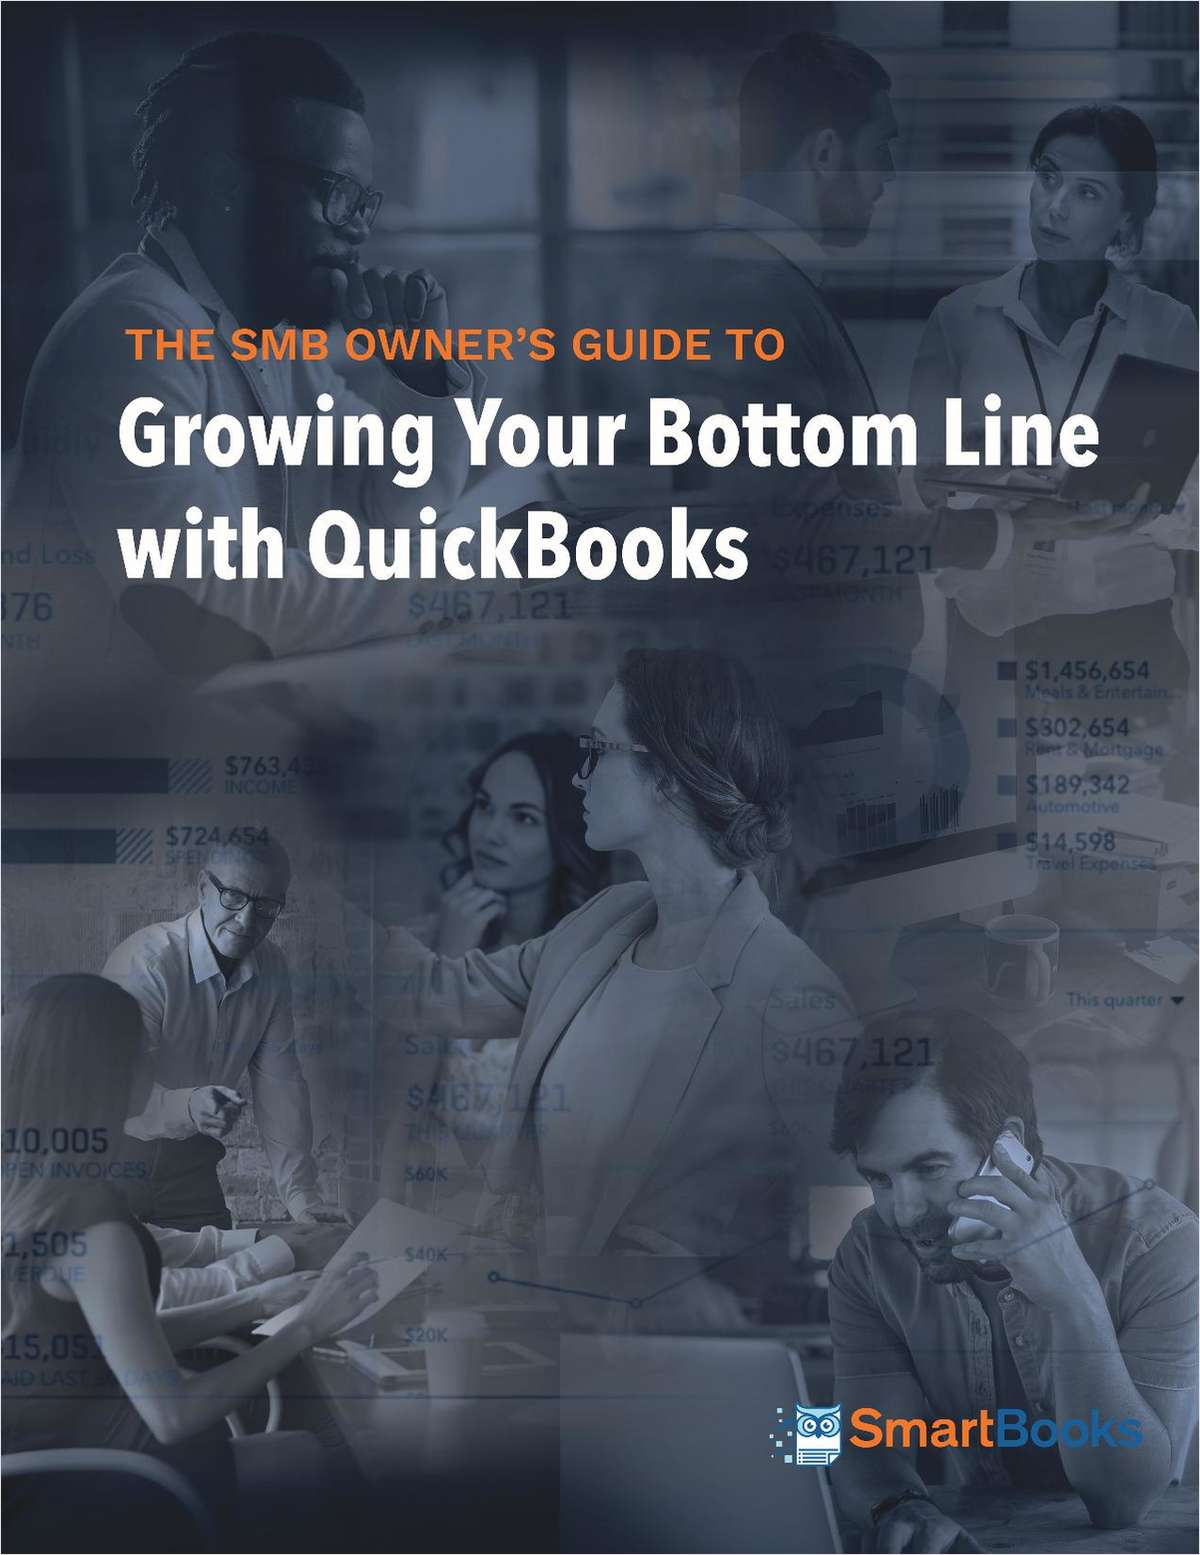 The SMB Owner's Guide to Growing Your Bottom Line with QuickBooks